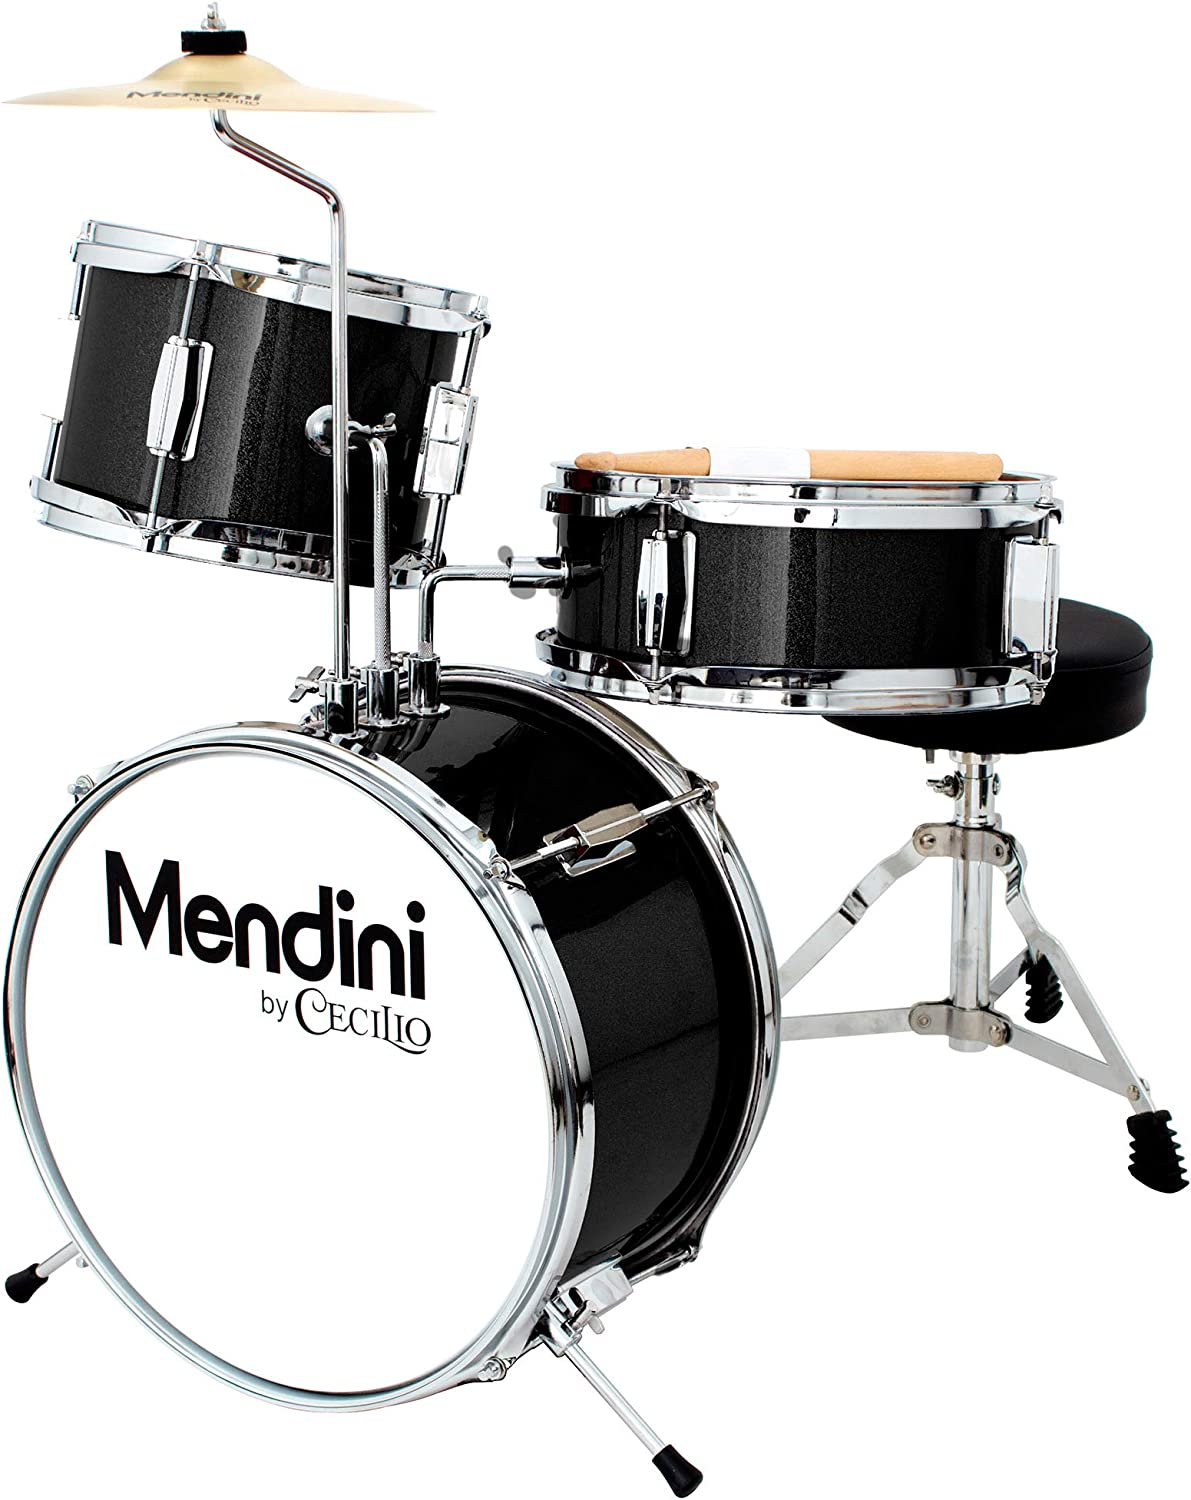 Mendini by Cecilio 13 inch 3-Piece Kids/Junior Drum Set with Throne, Cymbal, Pedal & Drumsticks